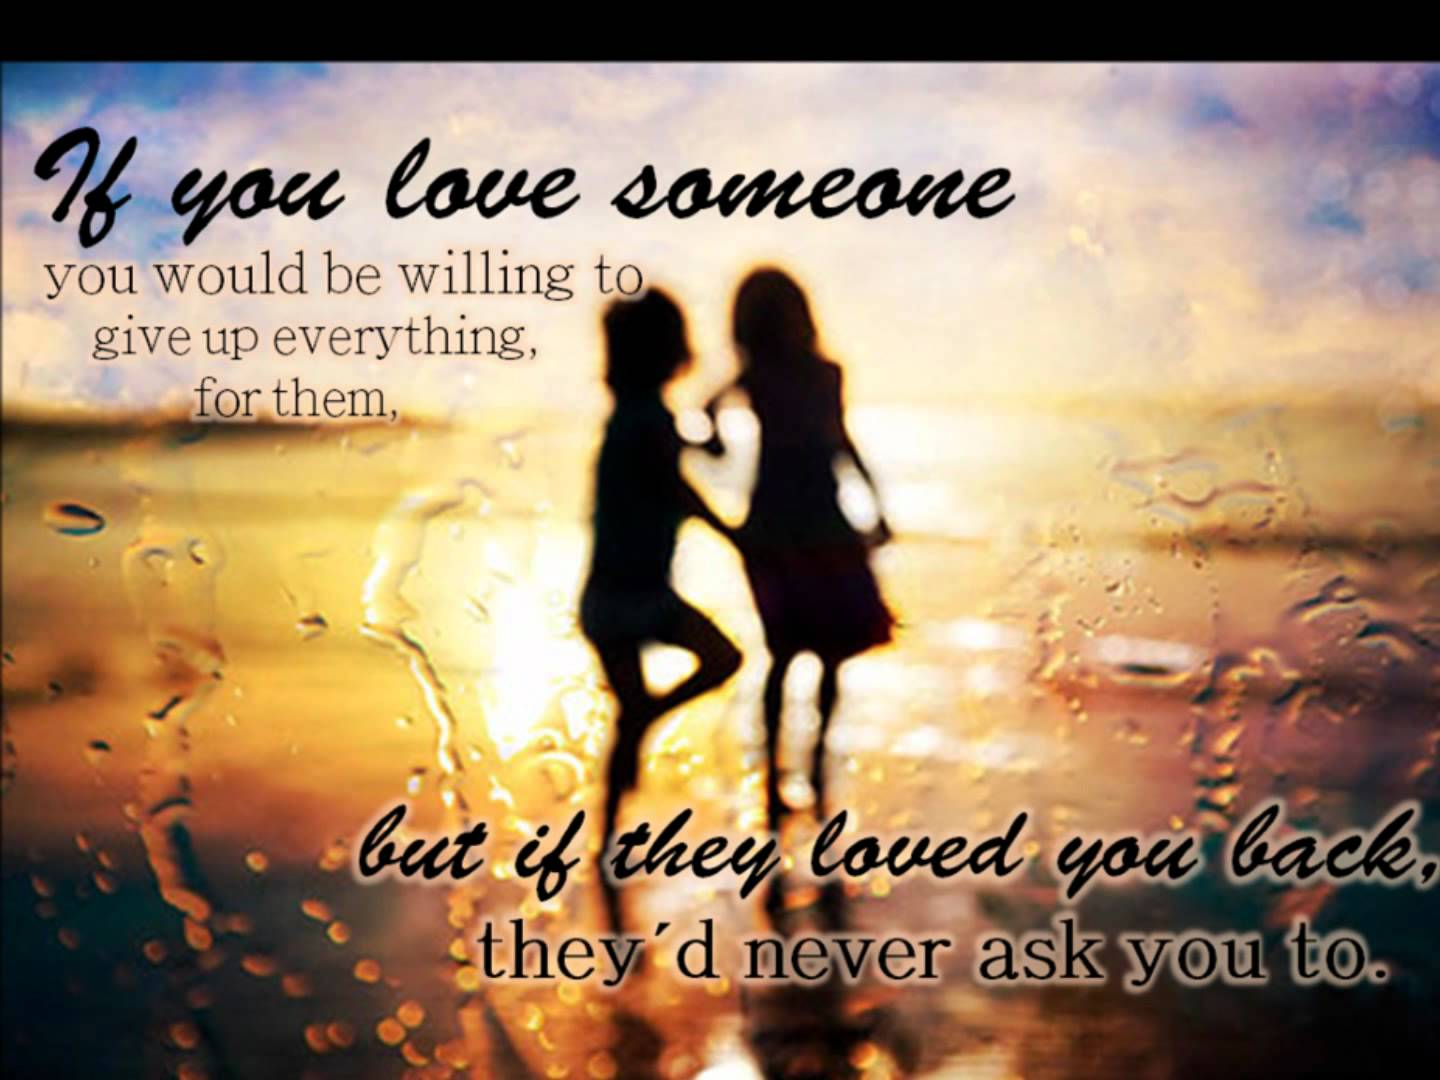 Quotes About Love: Best Quotes Of All Time. QuotesGram